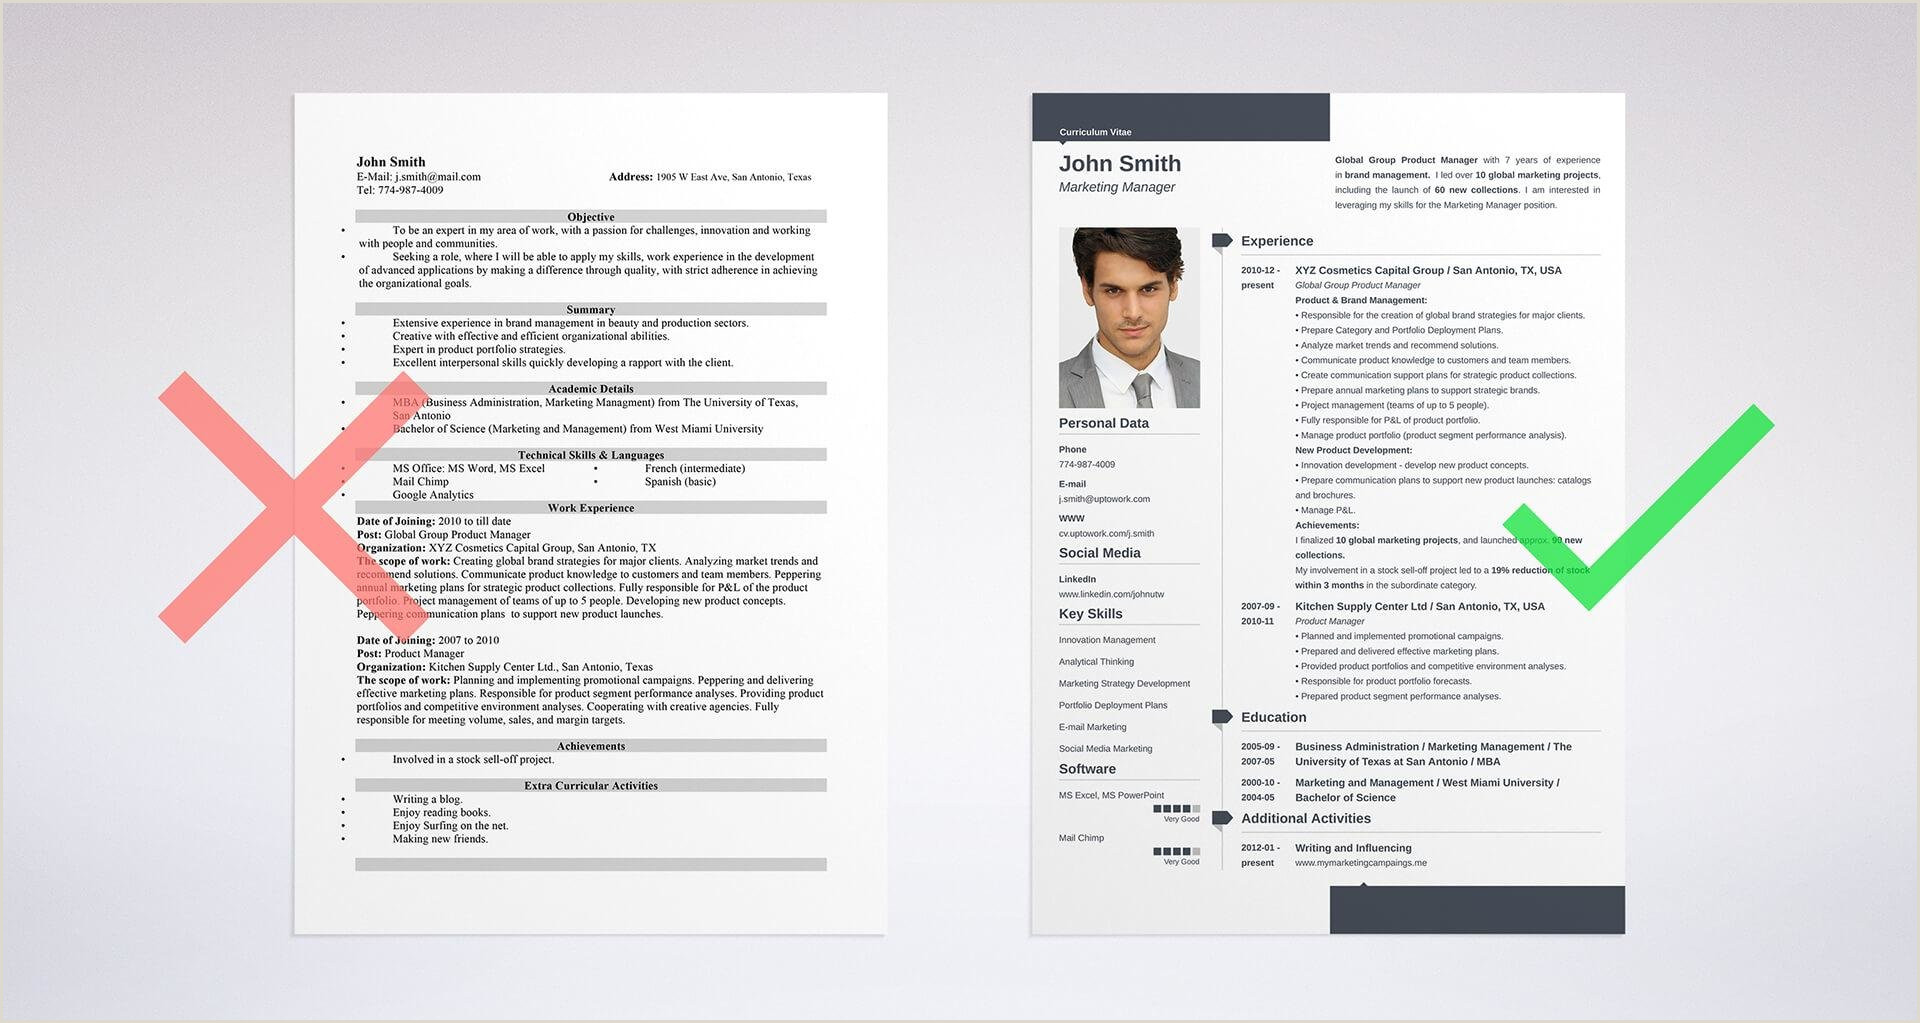 Bangladeshi Standard Cv format Cv Vs Resume Difference Definitions & when to Use which